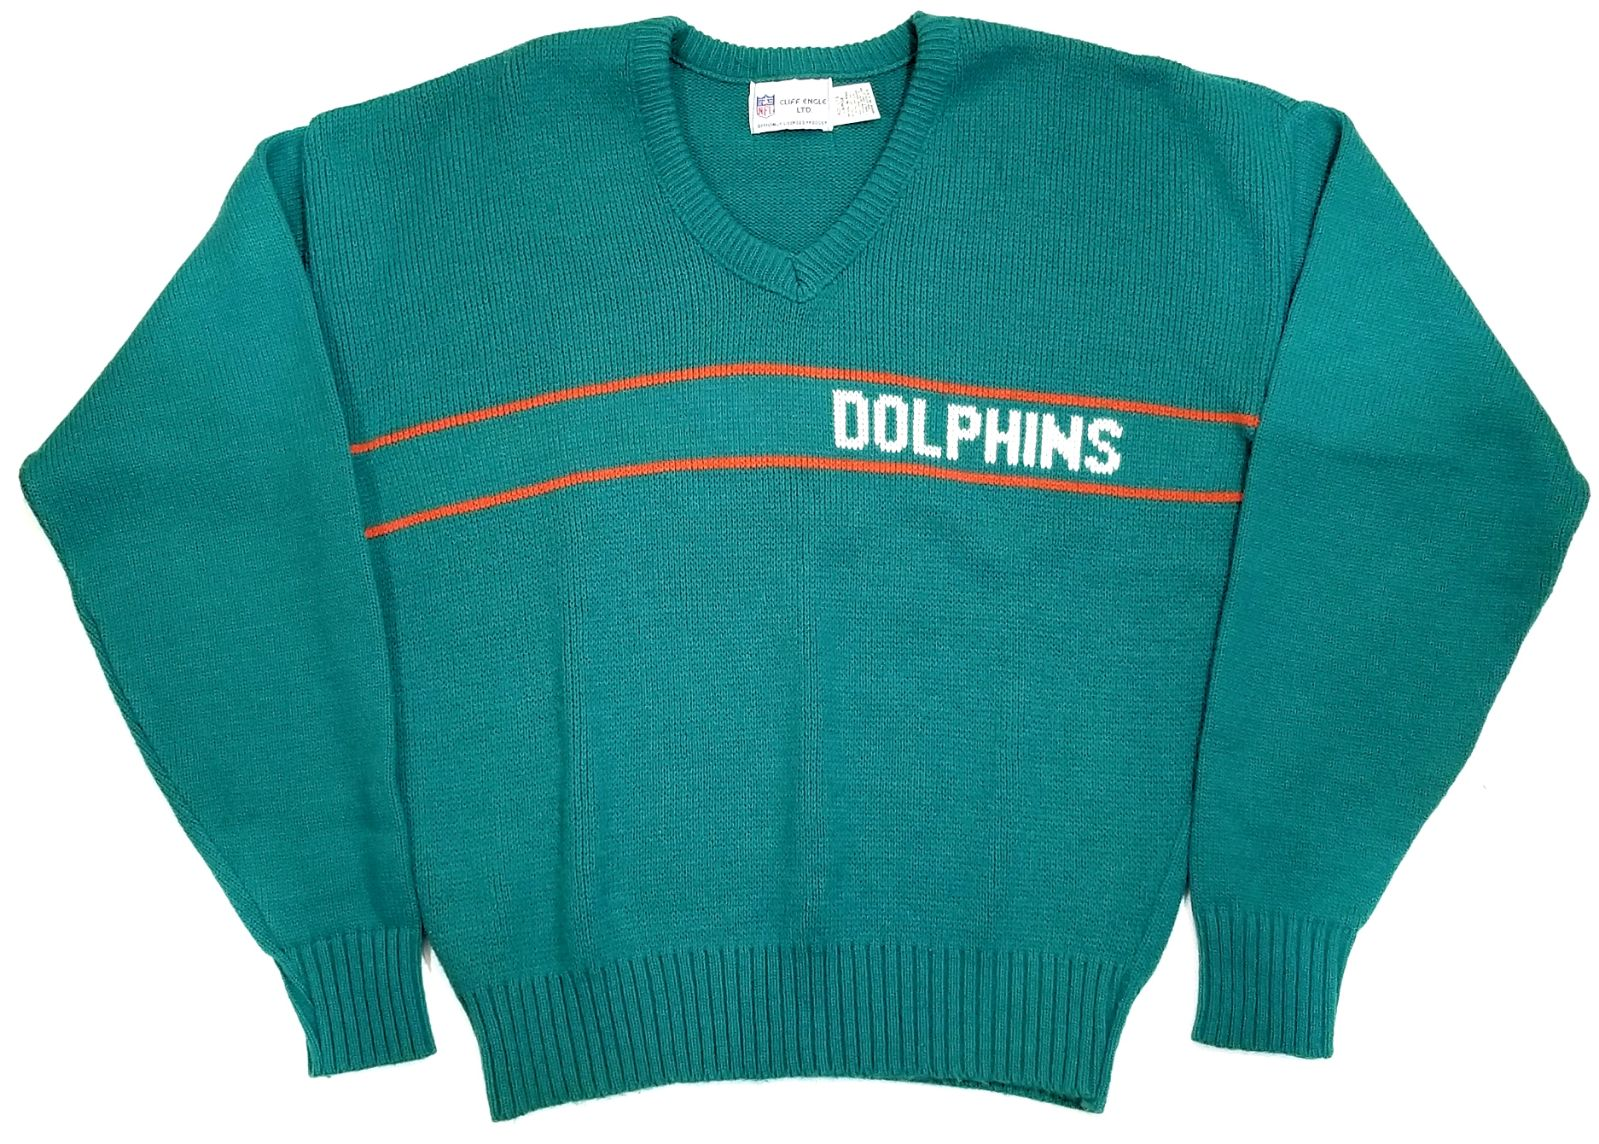 Miami Dolphins Vintage 80s Sweater